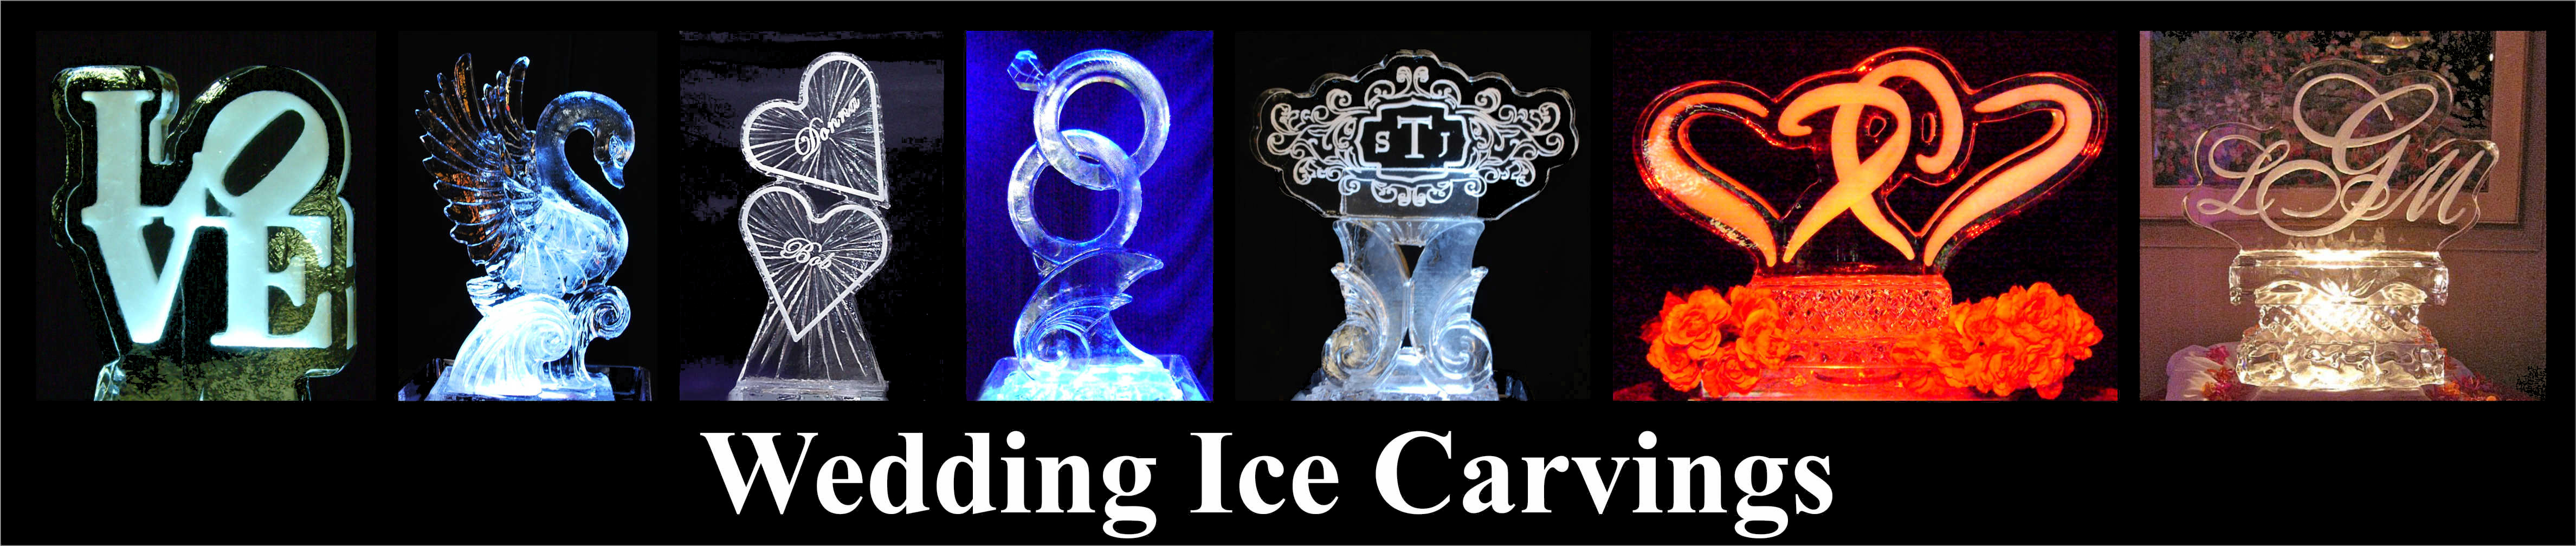 Wedding Ice Carvings